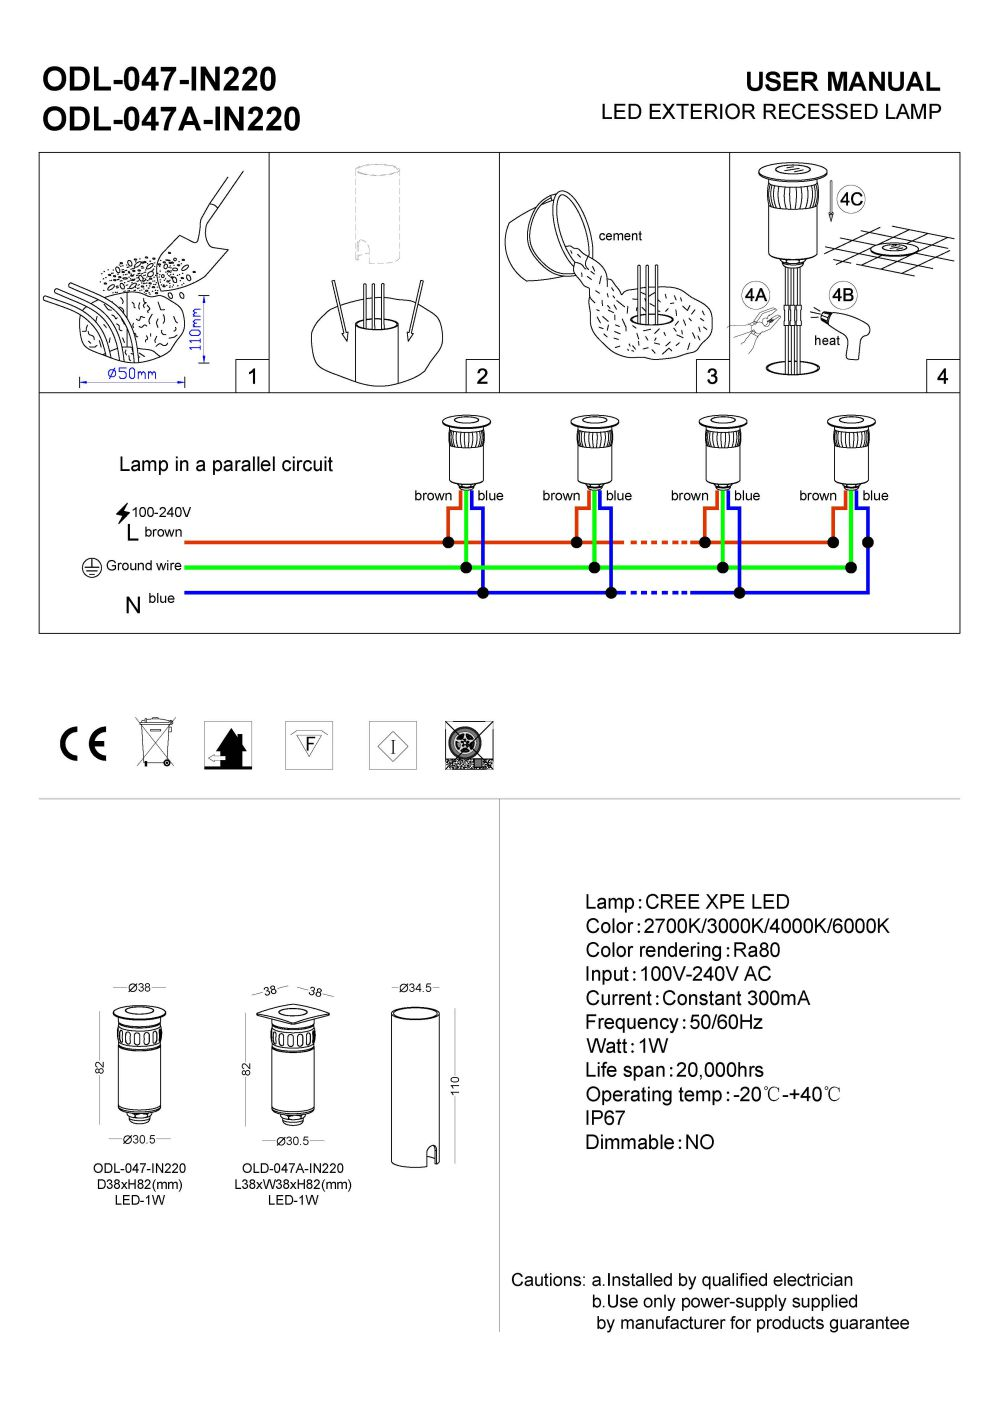 ODL-047-IN220 ODL-047A-IN220 brass LED ground light installation guide